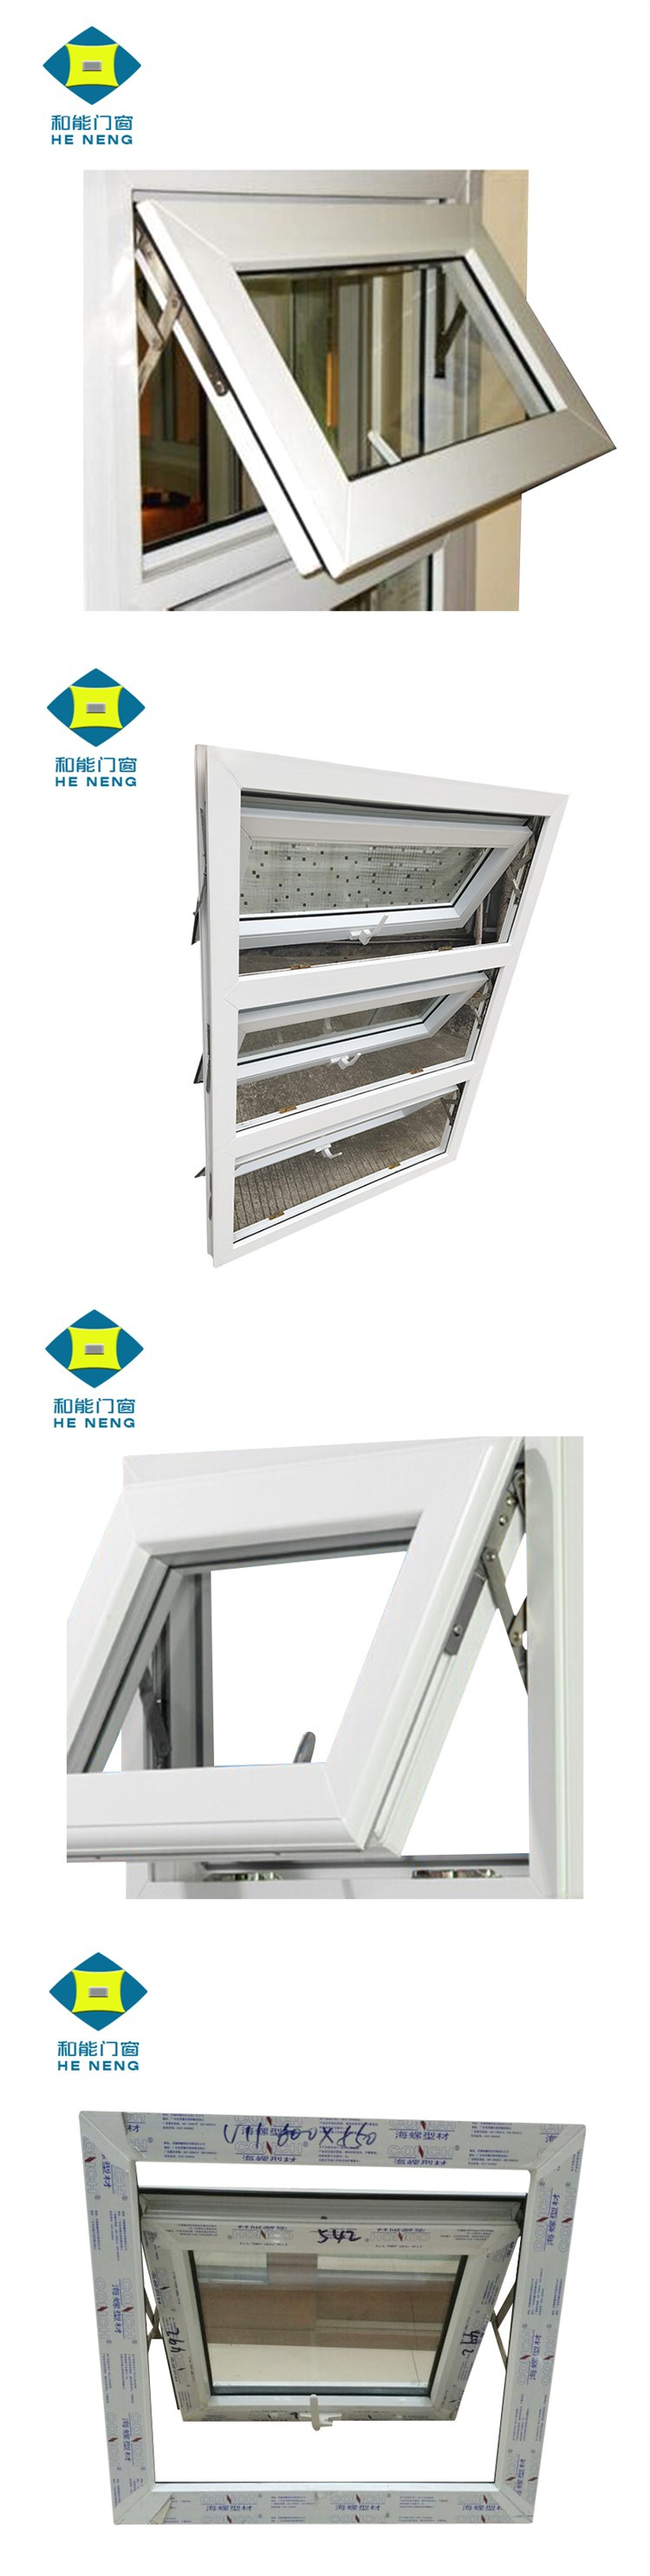 China Supplier PVC Awning Top Hung Casement Windows